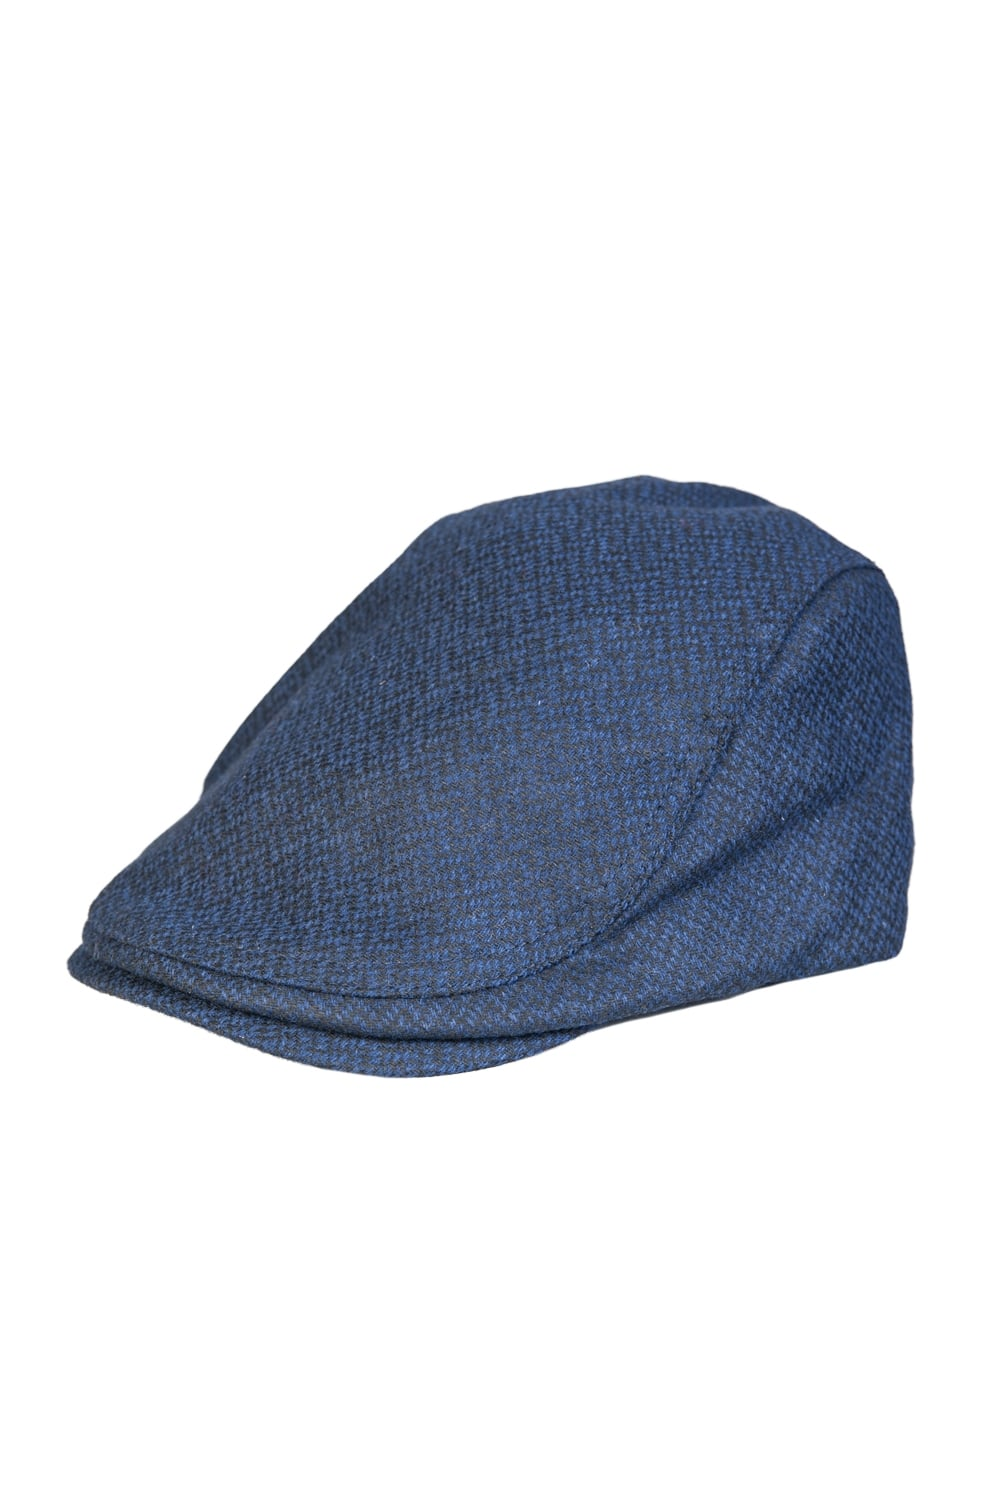 2e88ef78af0 Ted Baker Flat Cap XA7M XN14 THOMPSON - Accessories from Sage ...